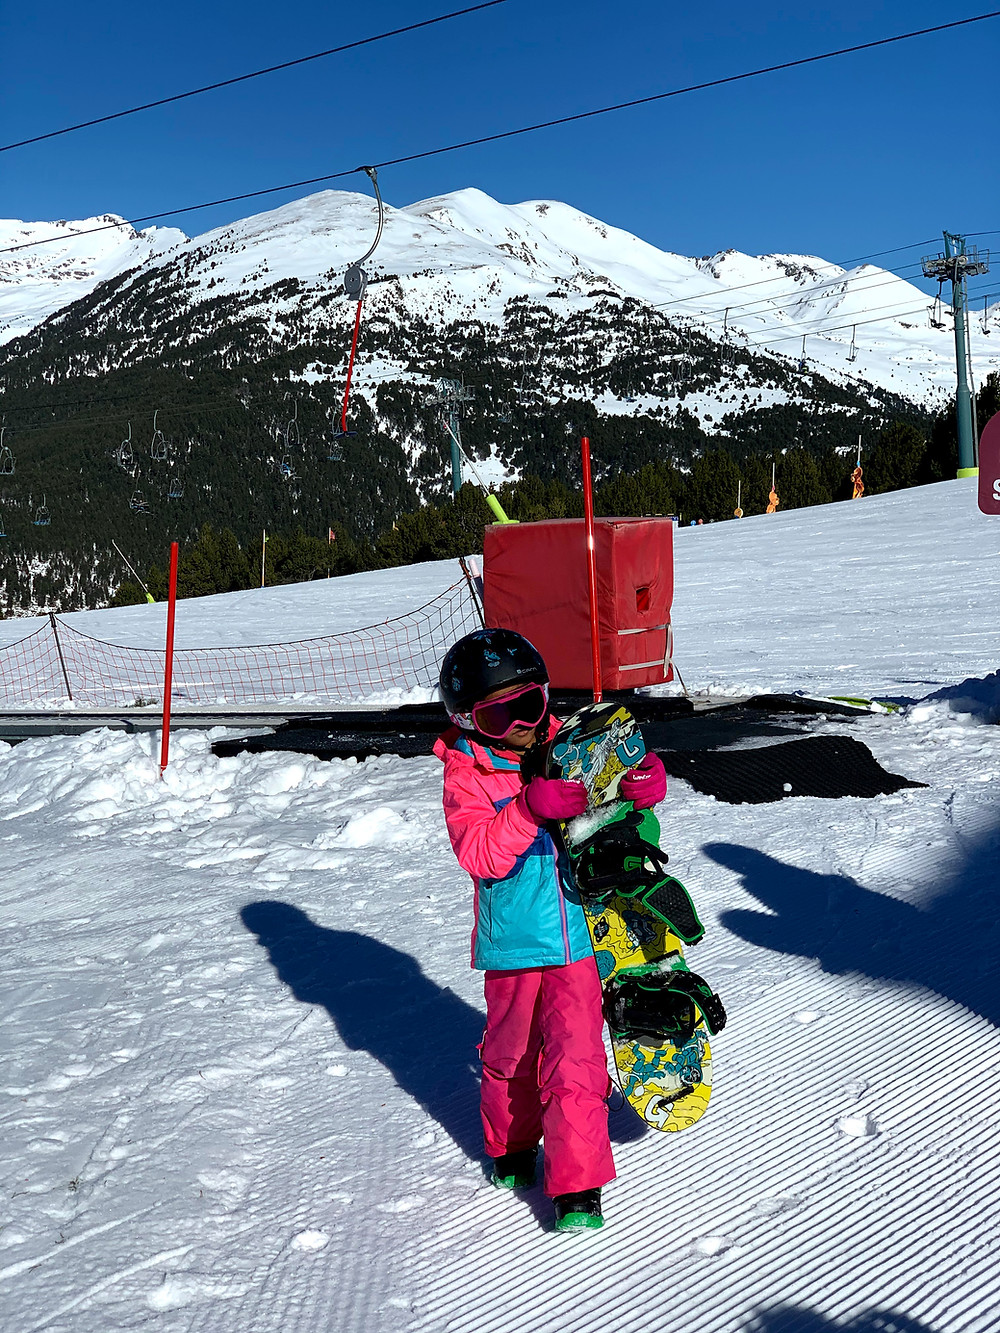 Hi, I am Zazi, a young snowboard gril. Here I am ready to go snowboarding for the first time ever :-).